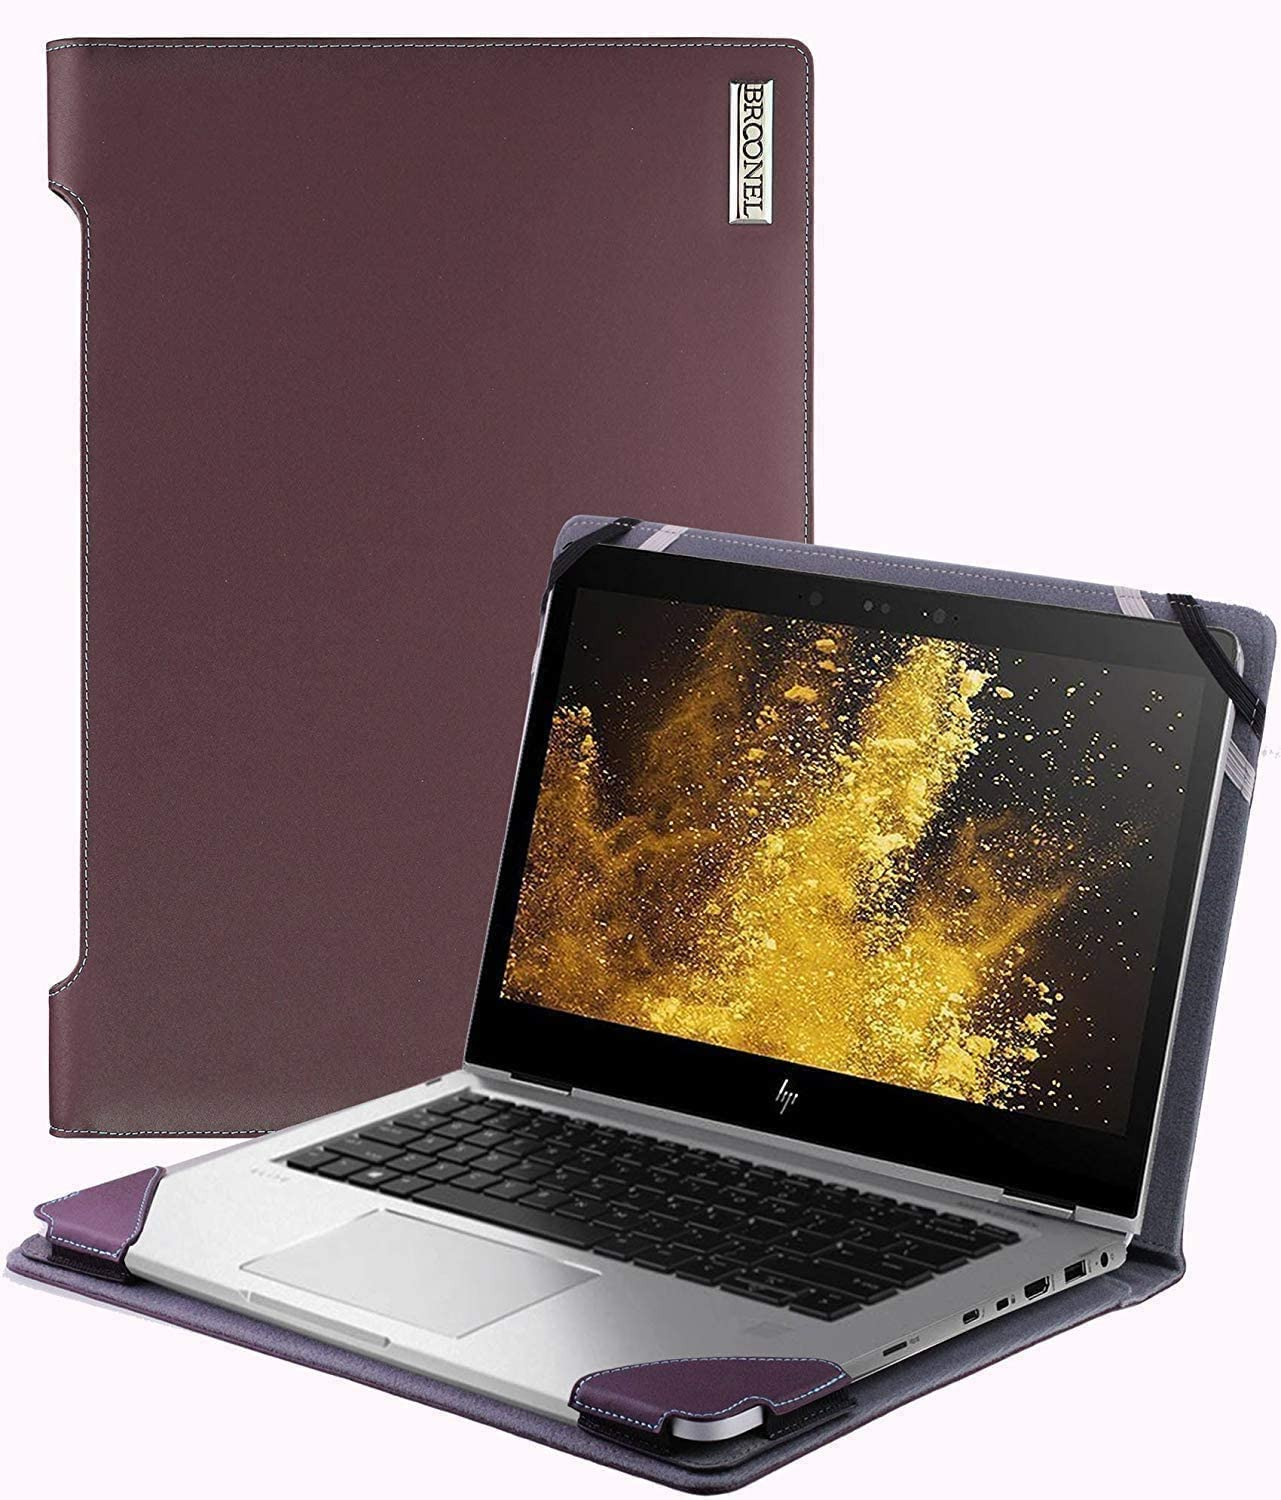 """Broonel - Profile Series - Purple Leather Laptop Case - Compatible with The HP ProBook 450 G7 15.6"""" FHD Laptop"""